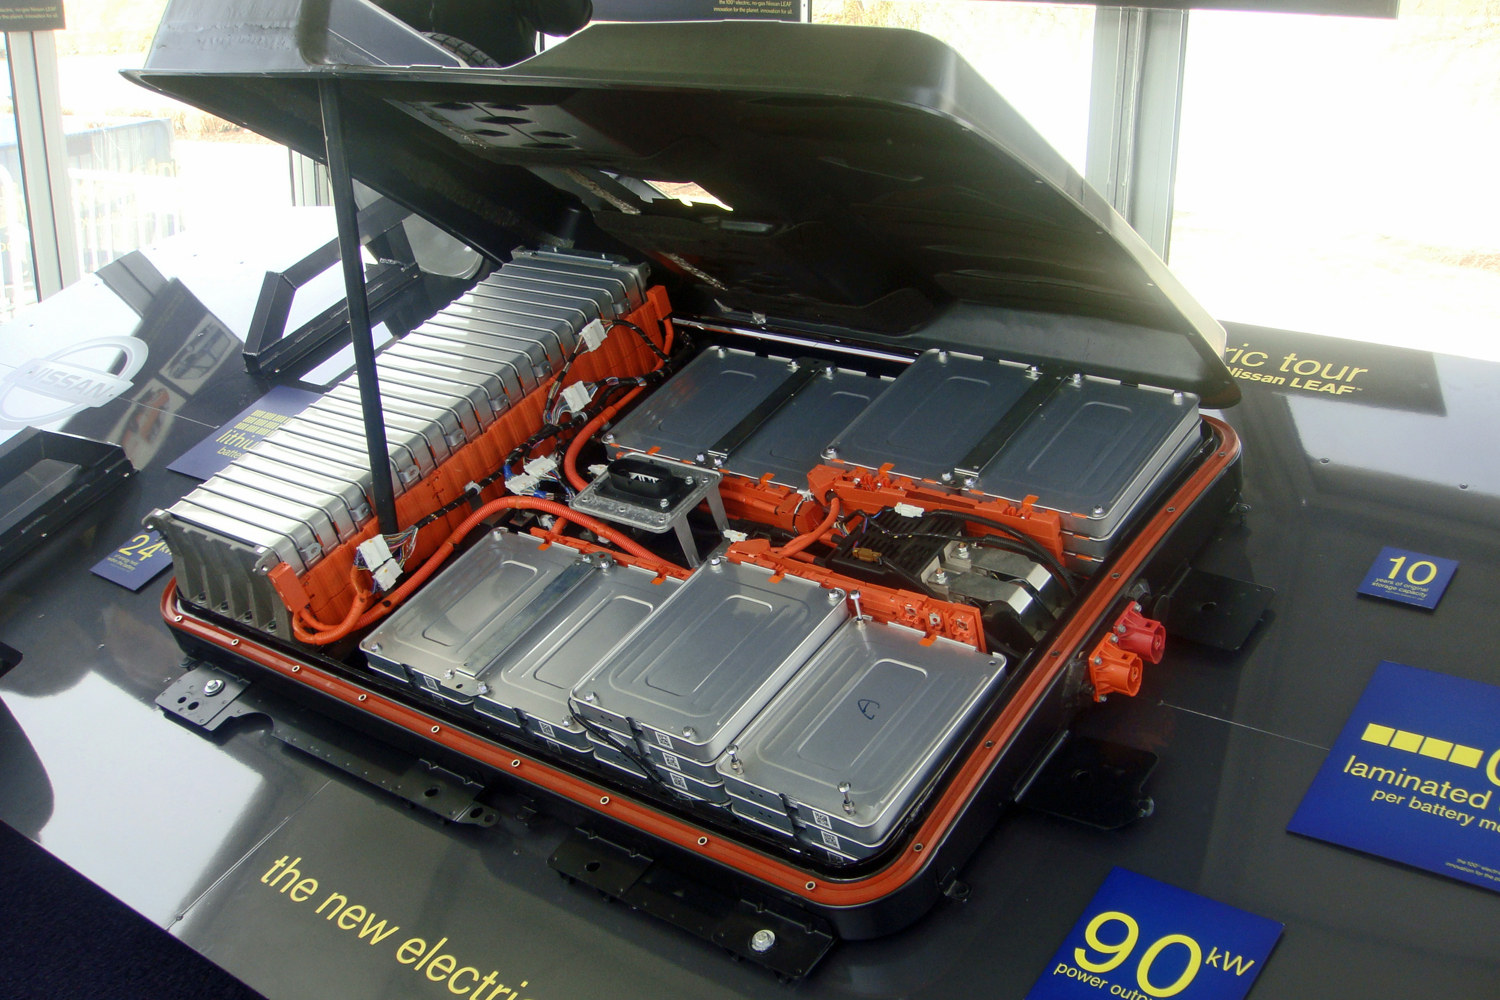 Electric Car Batteries Last Up To 20 Years